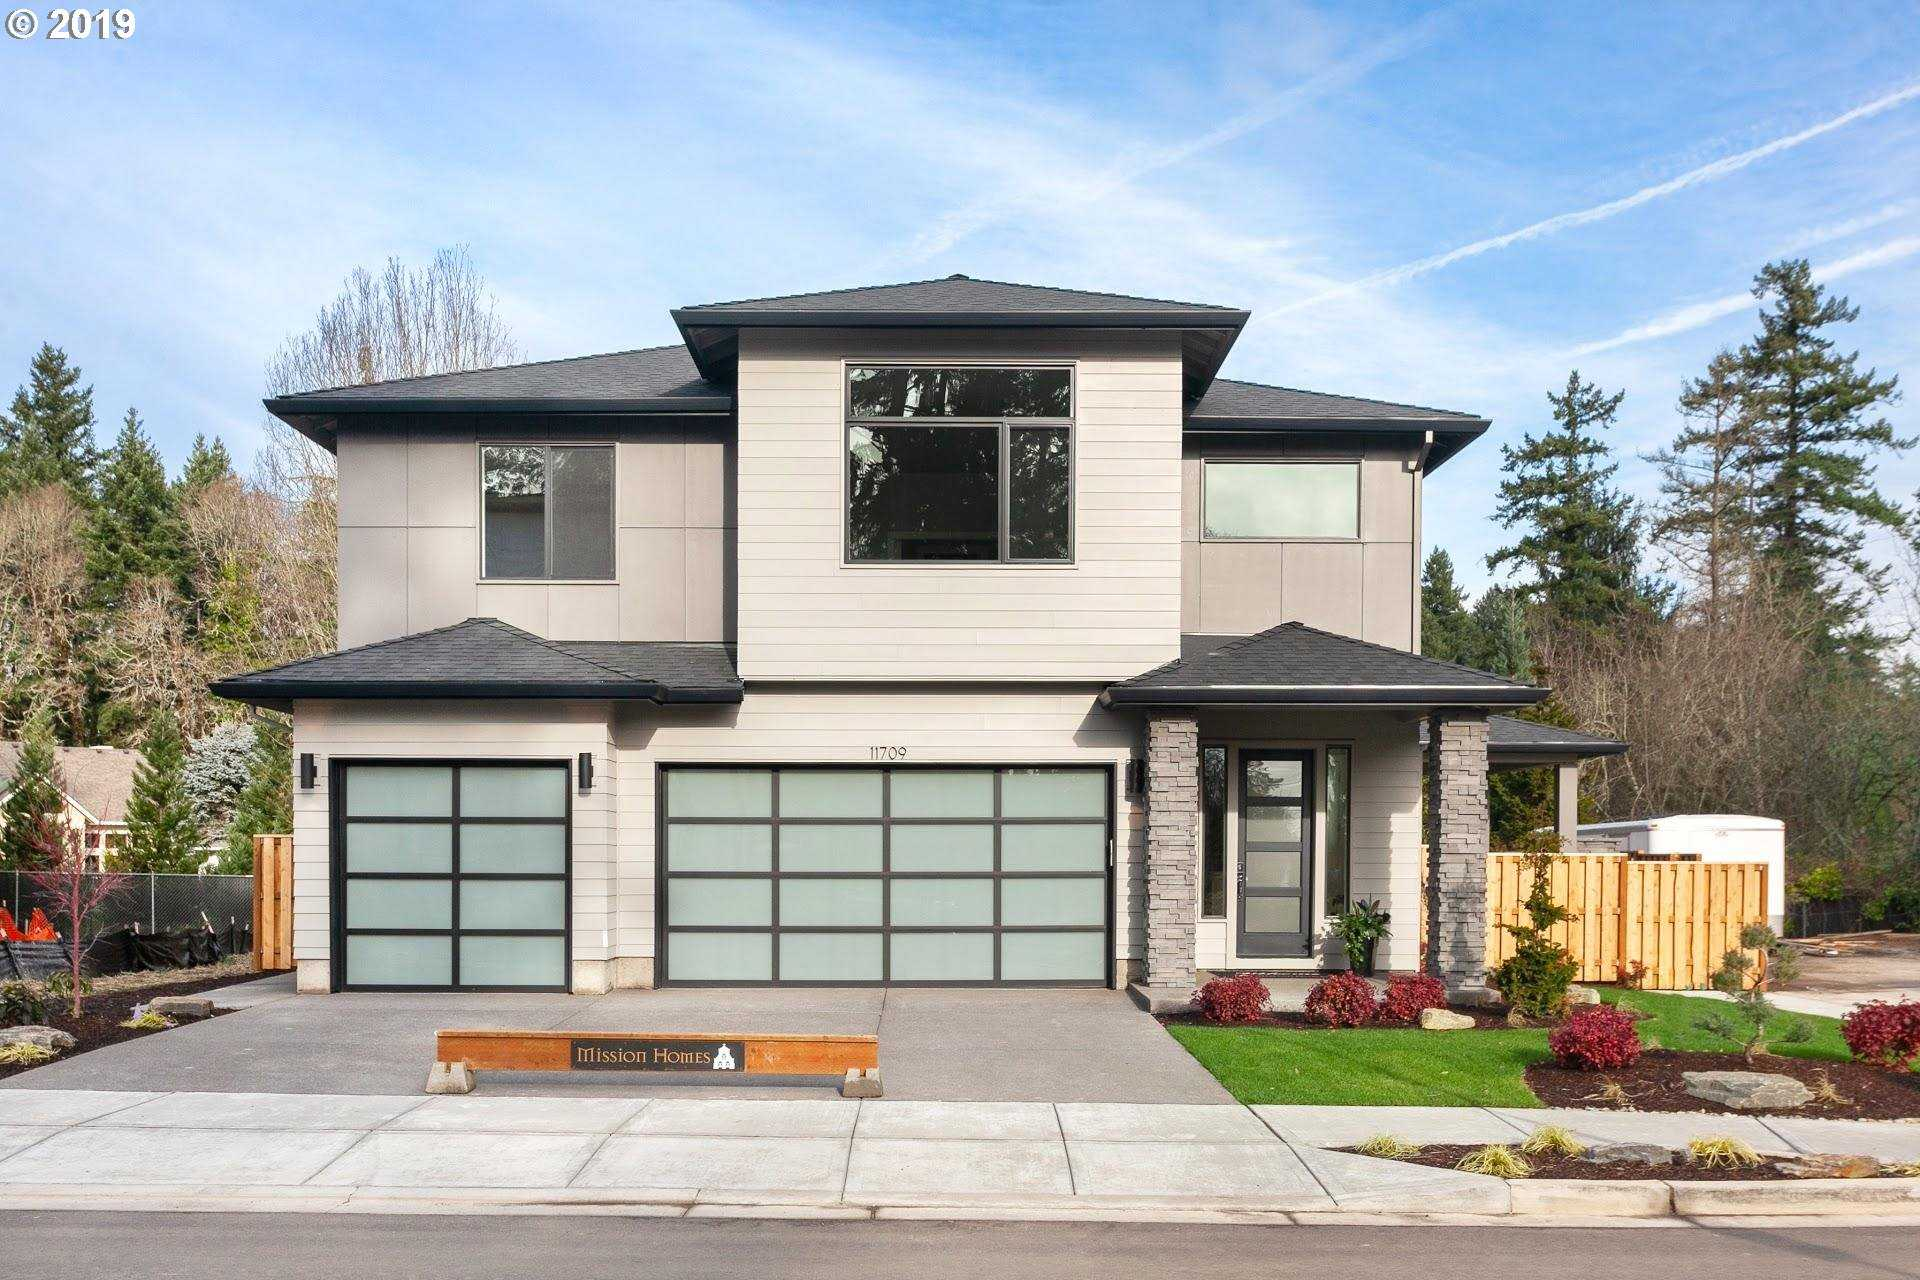 $1,150,000 - 4Br/3Ba -  for Sale in Cameron Place, Beaverton